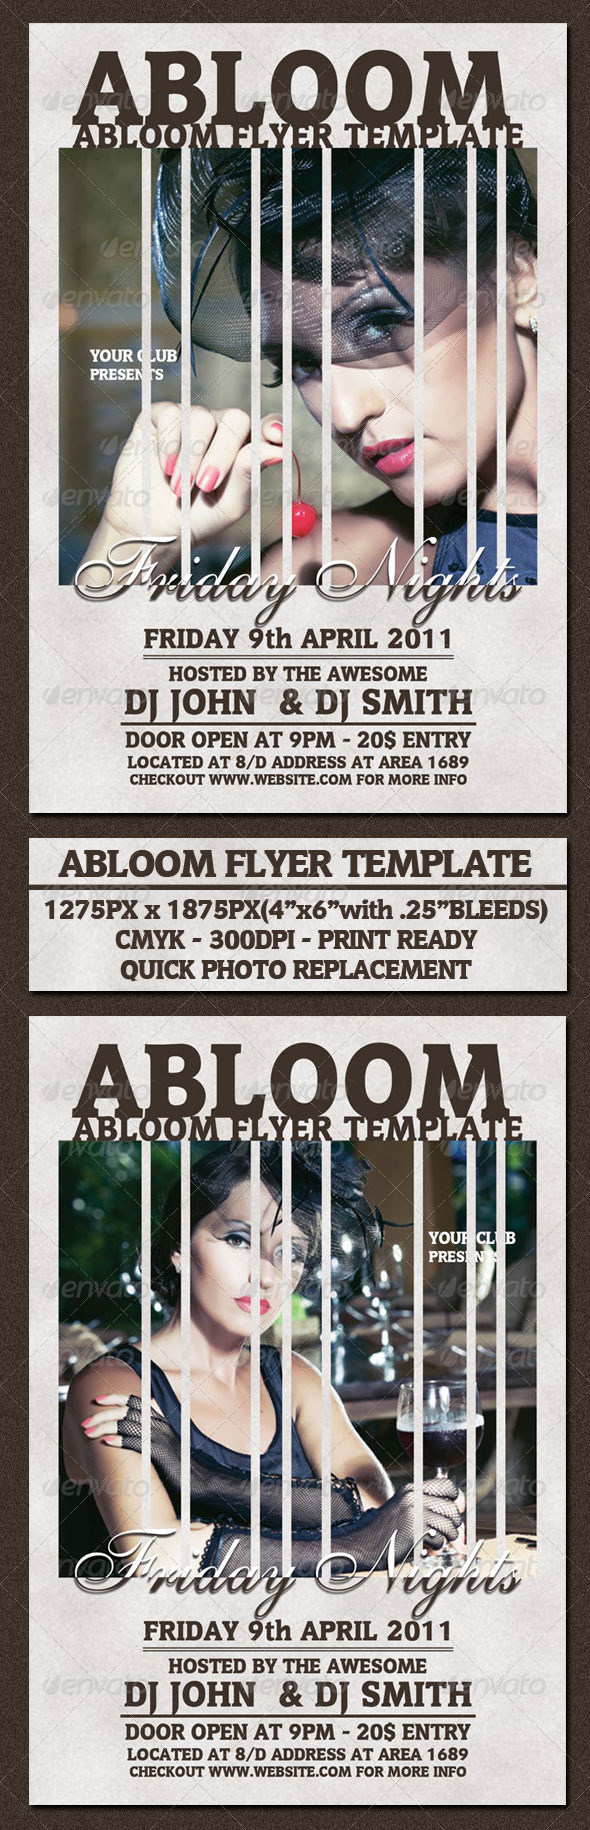 Abloom Flyer Template - Clubs & Parties Events